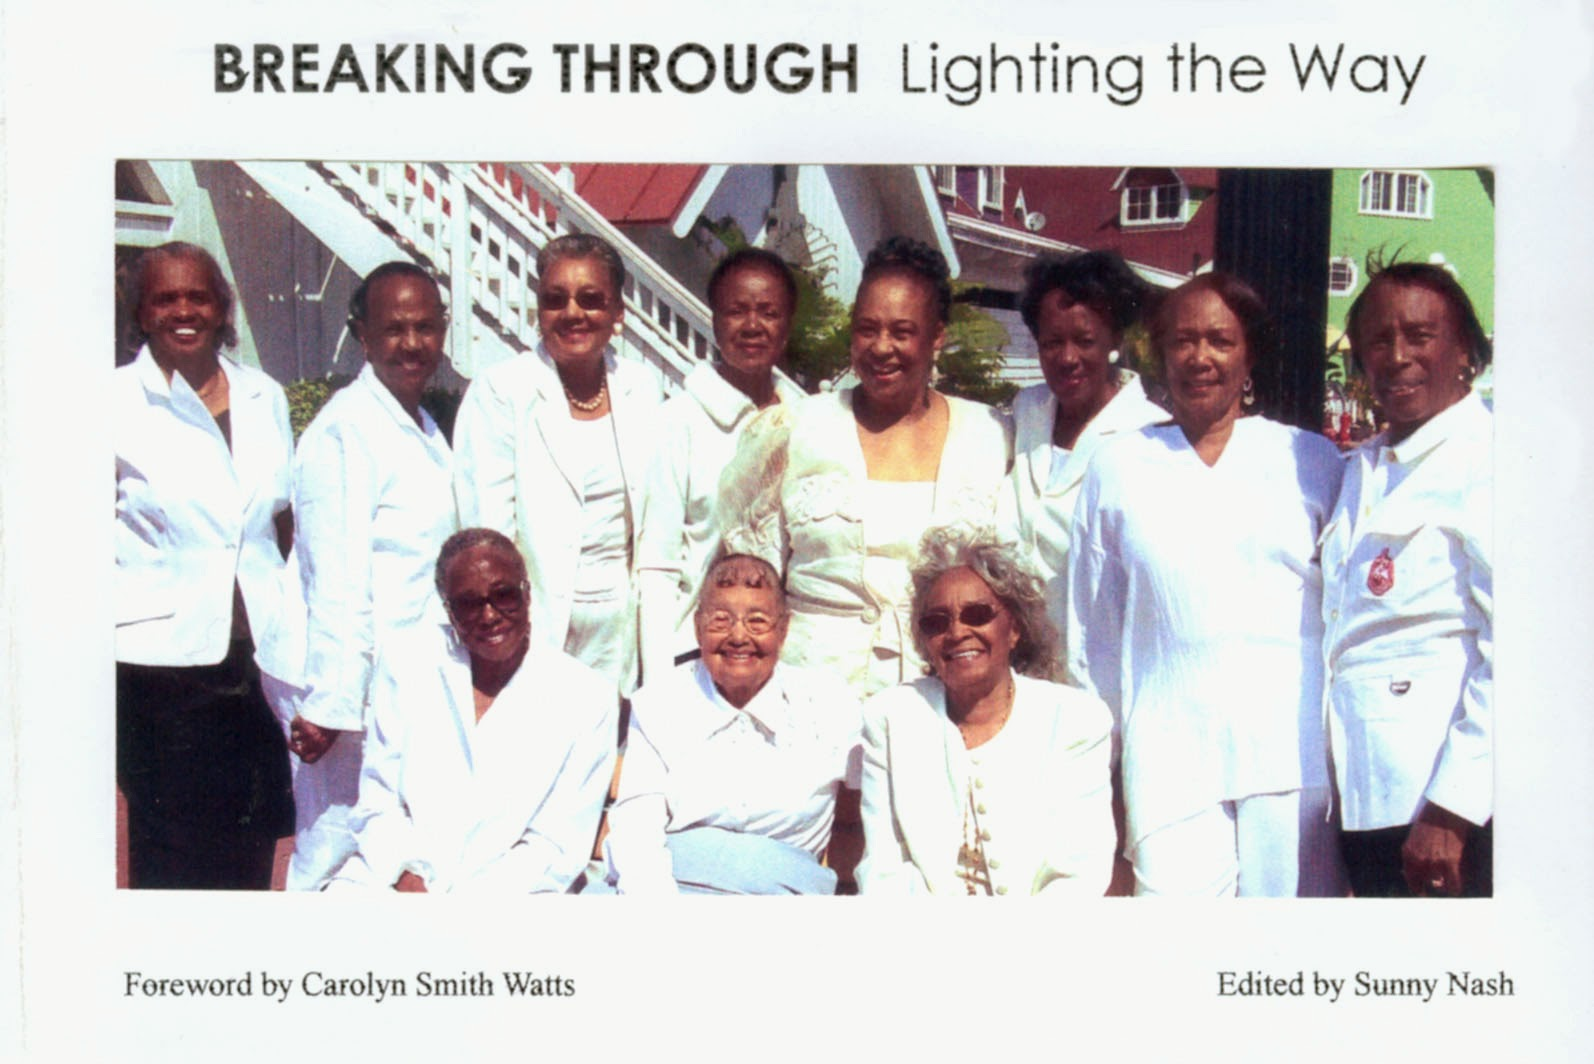 BREAKING THROUGH Lighting the Way